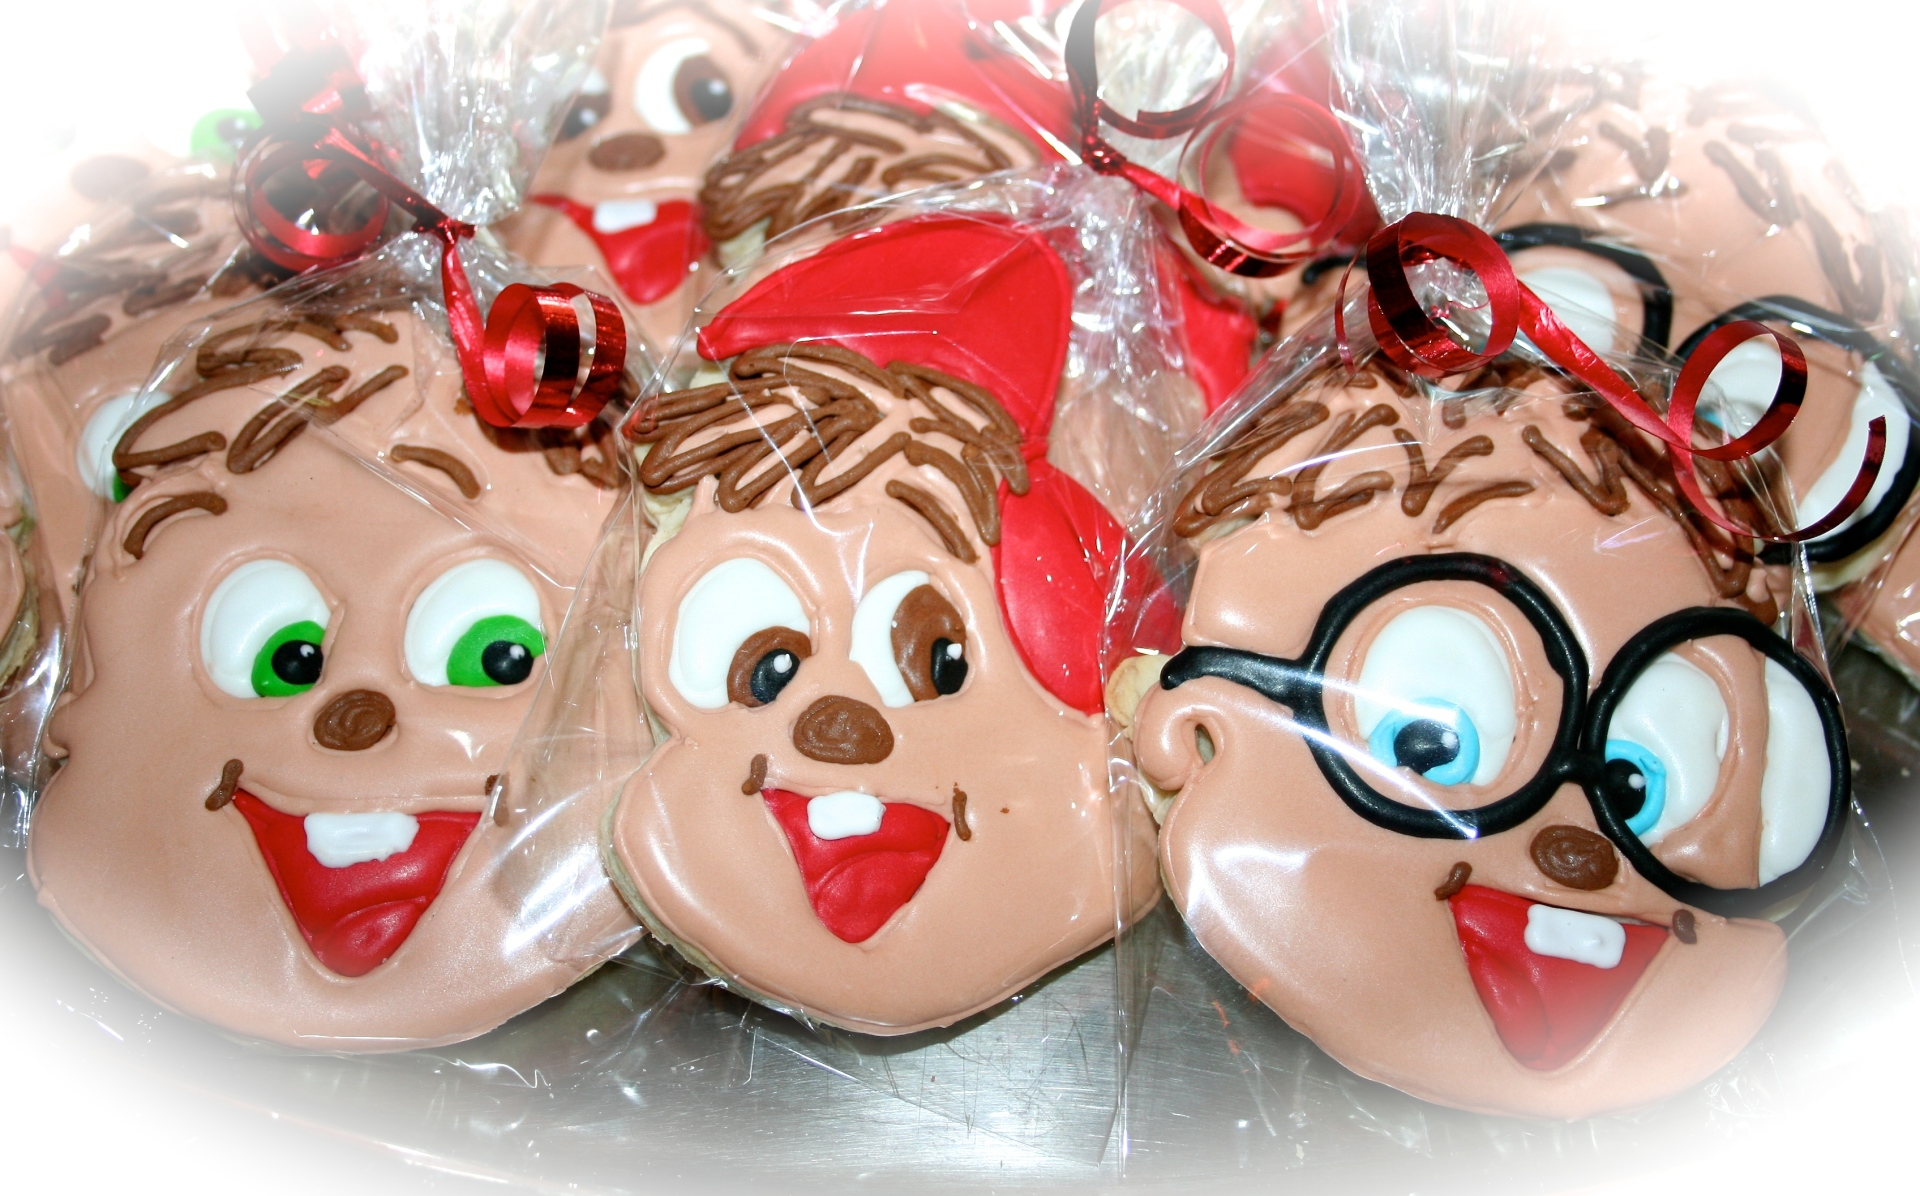 Alvin and the Chipmunks Sugar Cookies